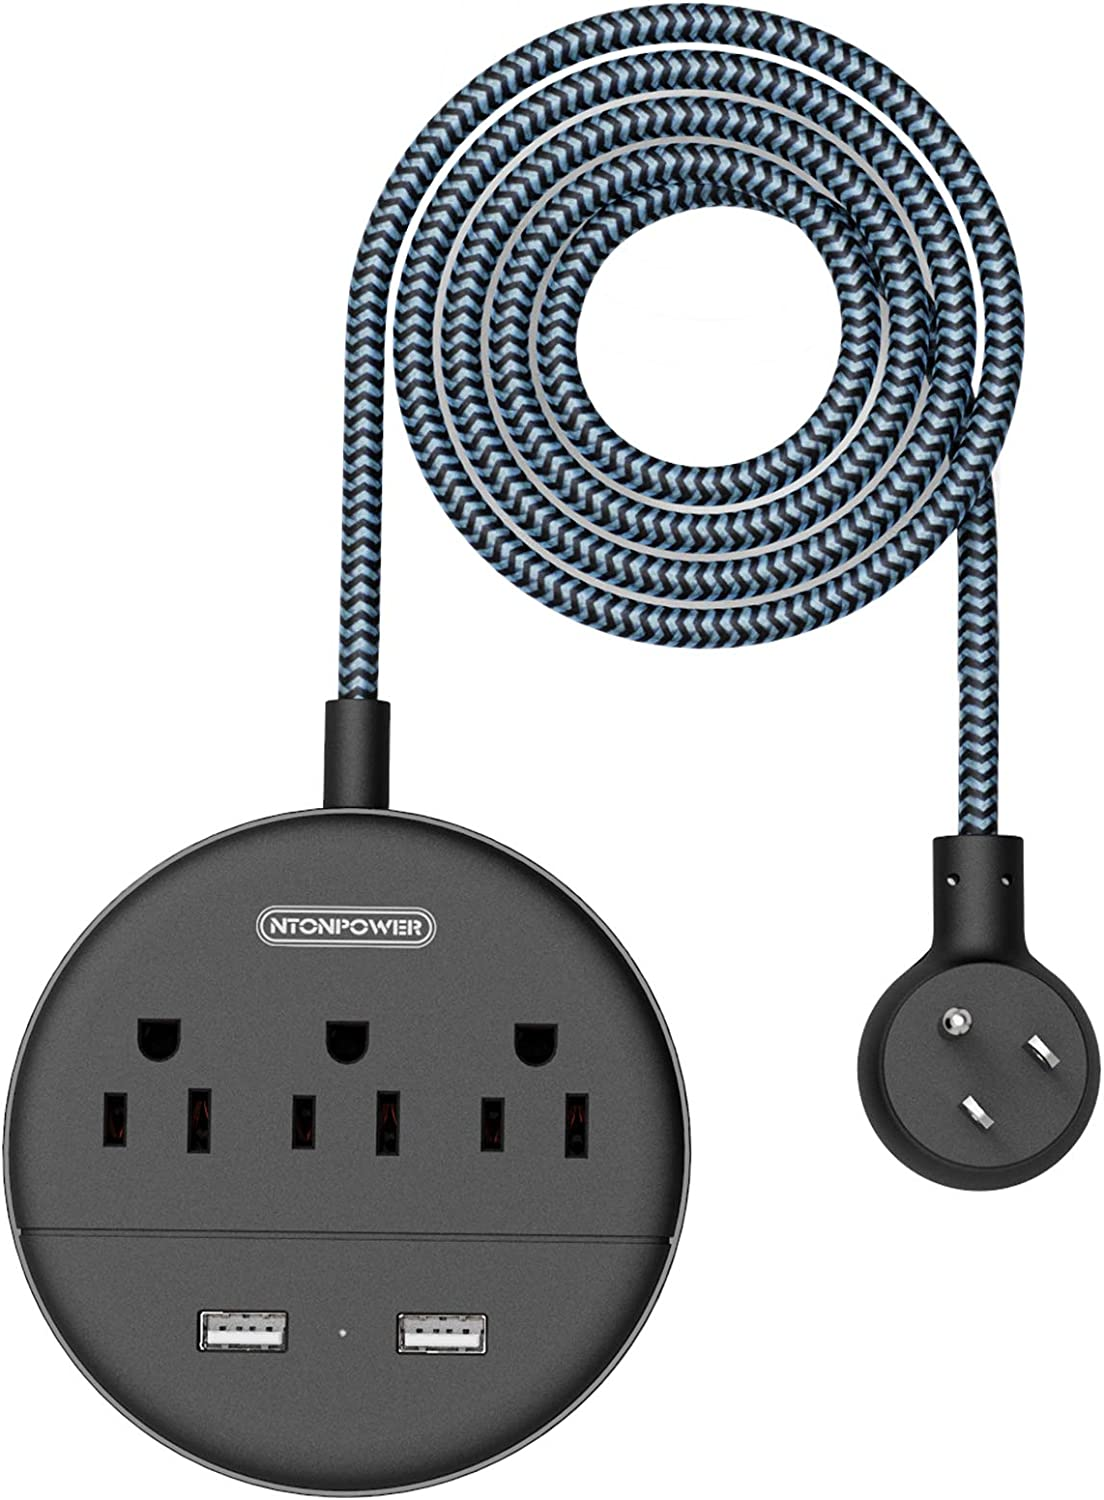 NTONPOWER Braided Power Strip Flat Plug with USB, 5ft Power Cord, Compact Desktop Charging Station with 3 Outlets 2 USB Ports, ETL Listed, Wall Mount Small Size for Dorm Nightstand Home Office, Black